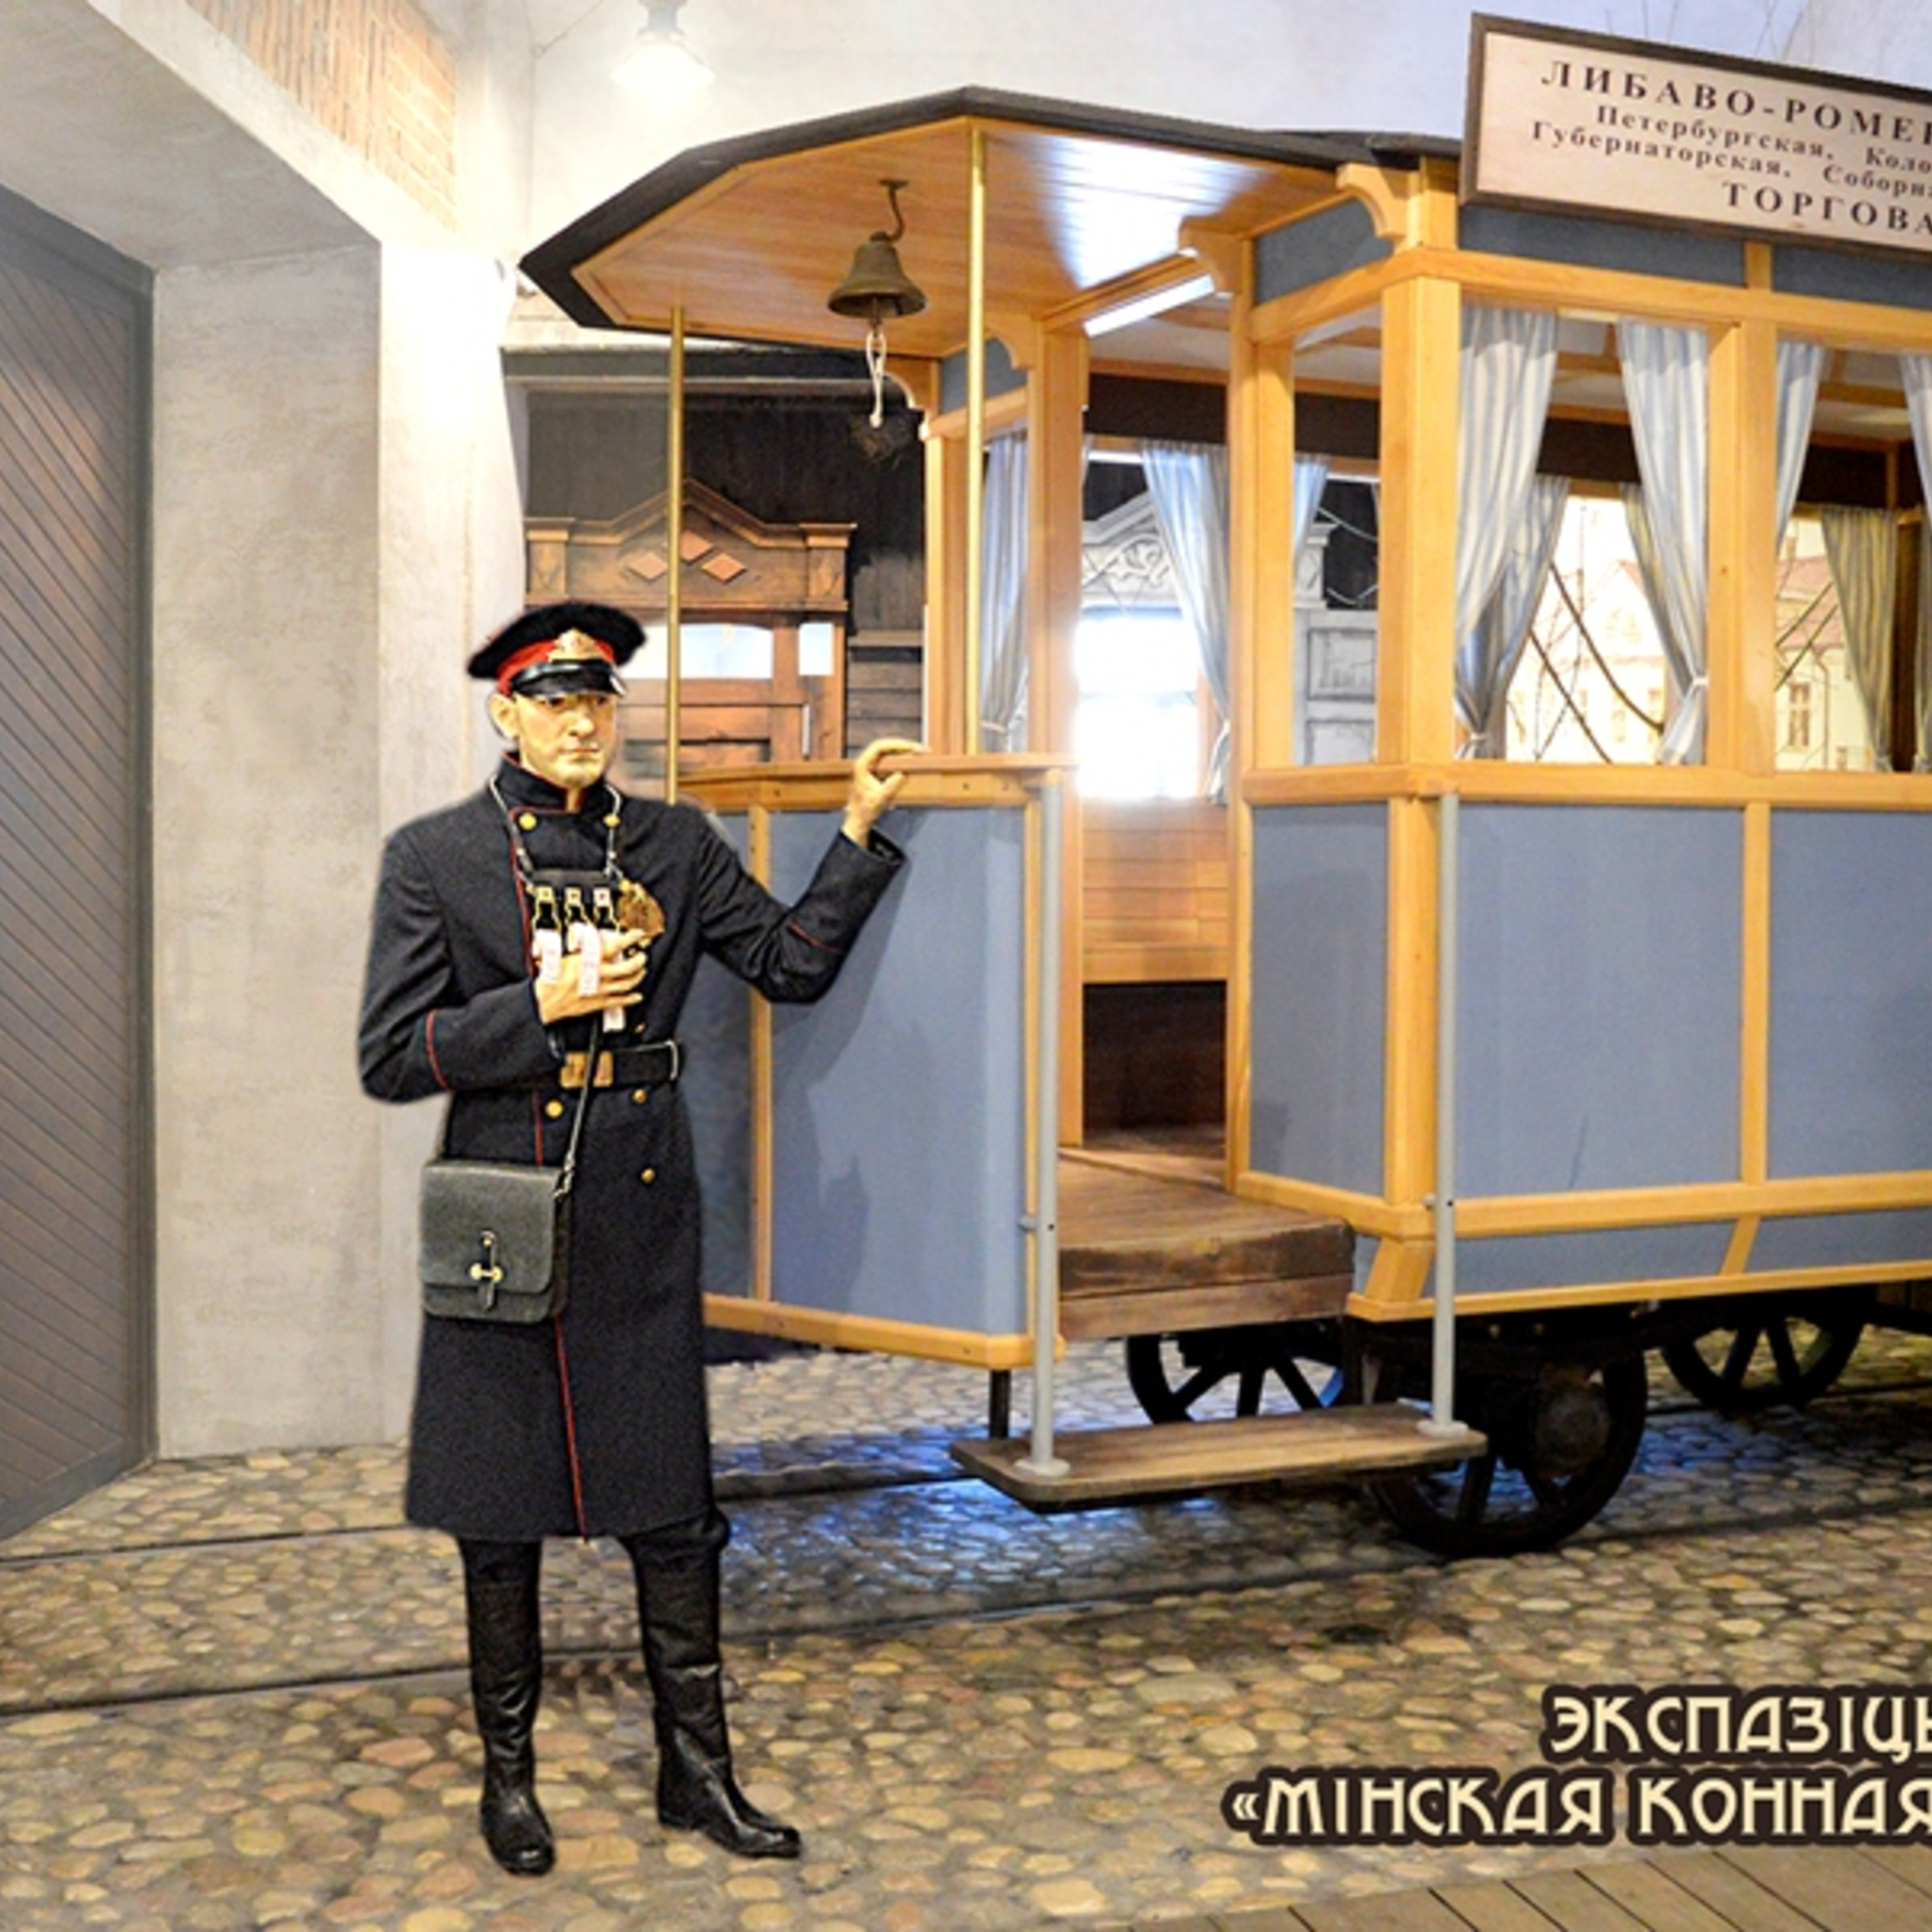 The exhibition Minsk horse railway